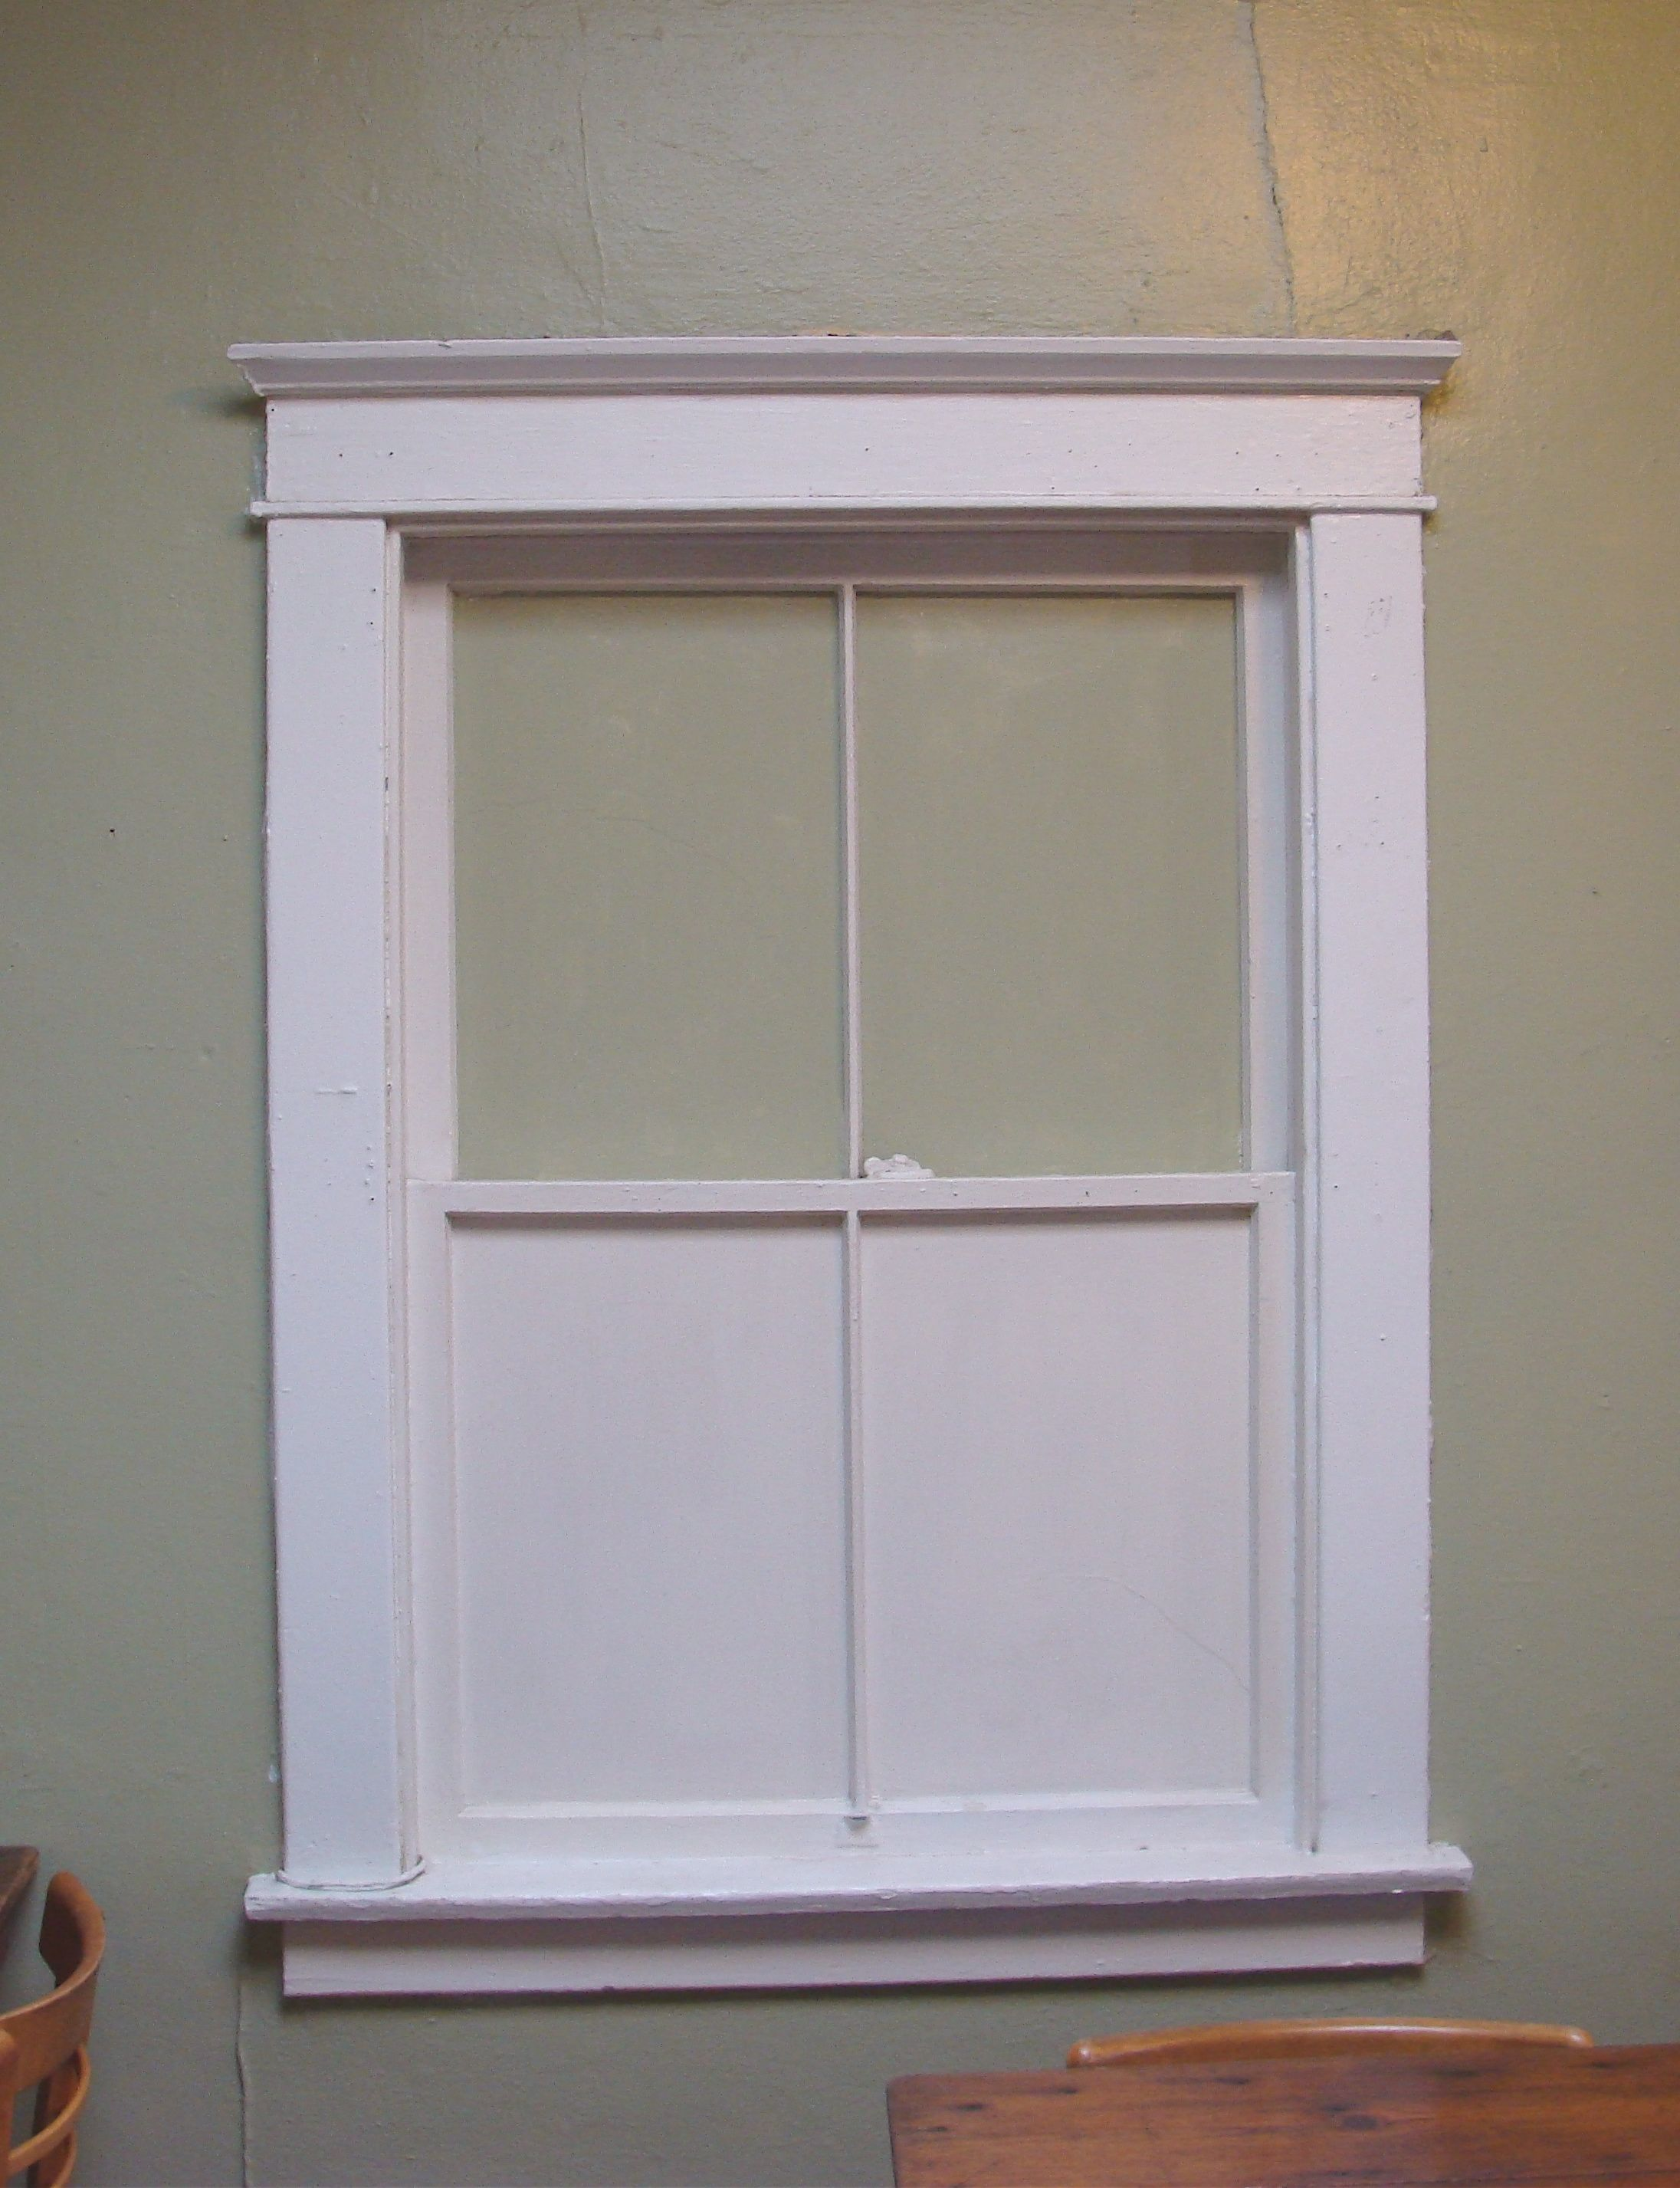 craftsman window google search exterior window molding idea - Exterior Window Moulding Designs